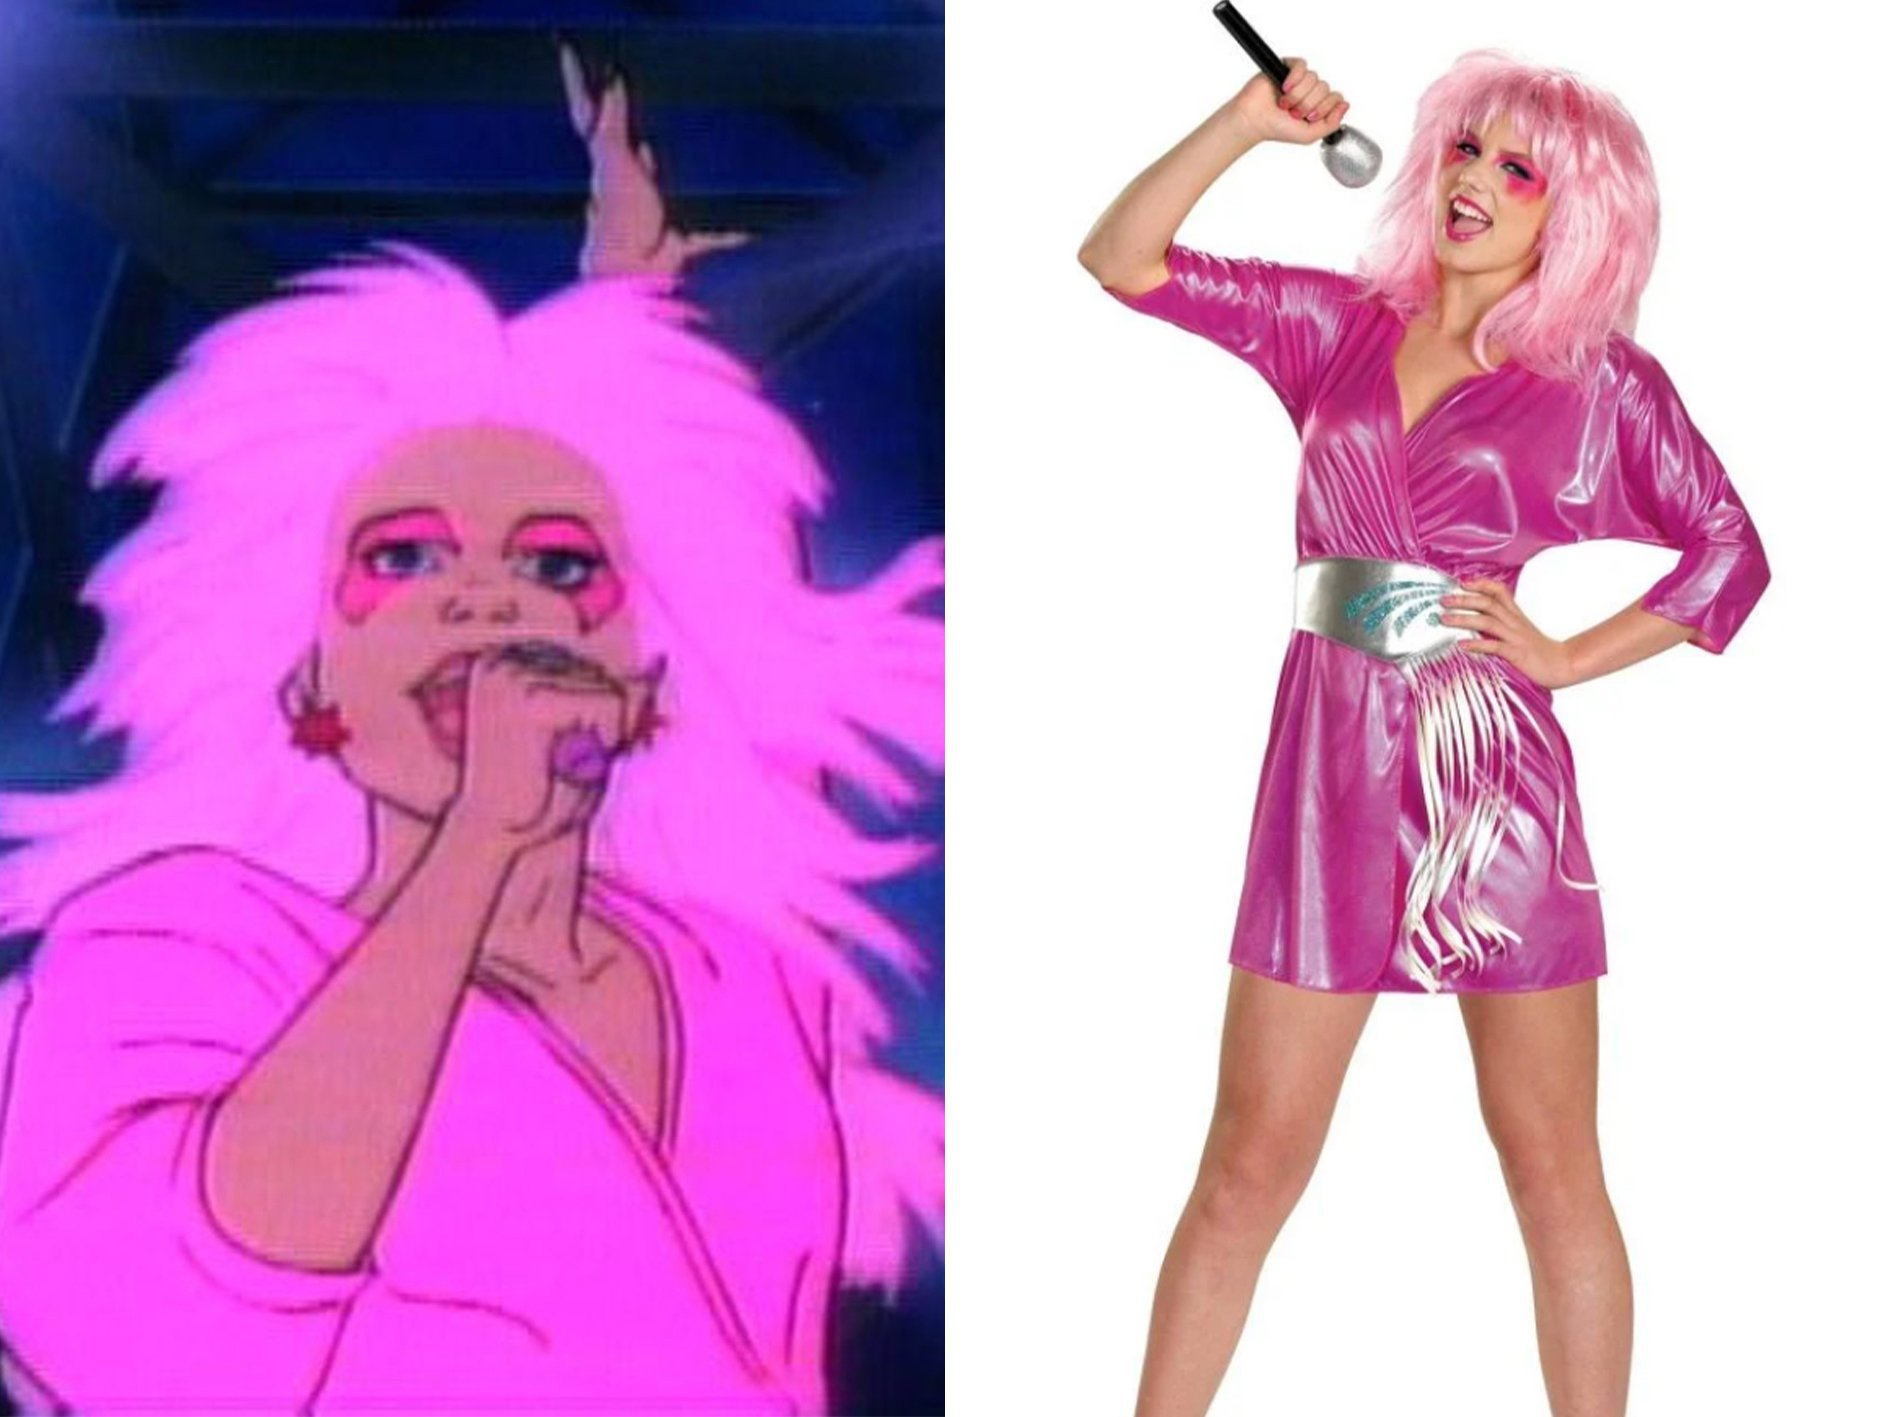 Jem 15 Halloween Costumes Inspired By The 80s - Who Will You Go As?